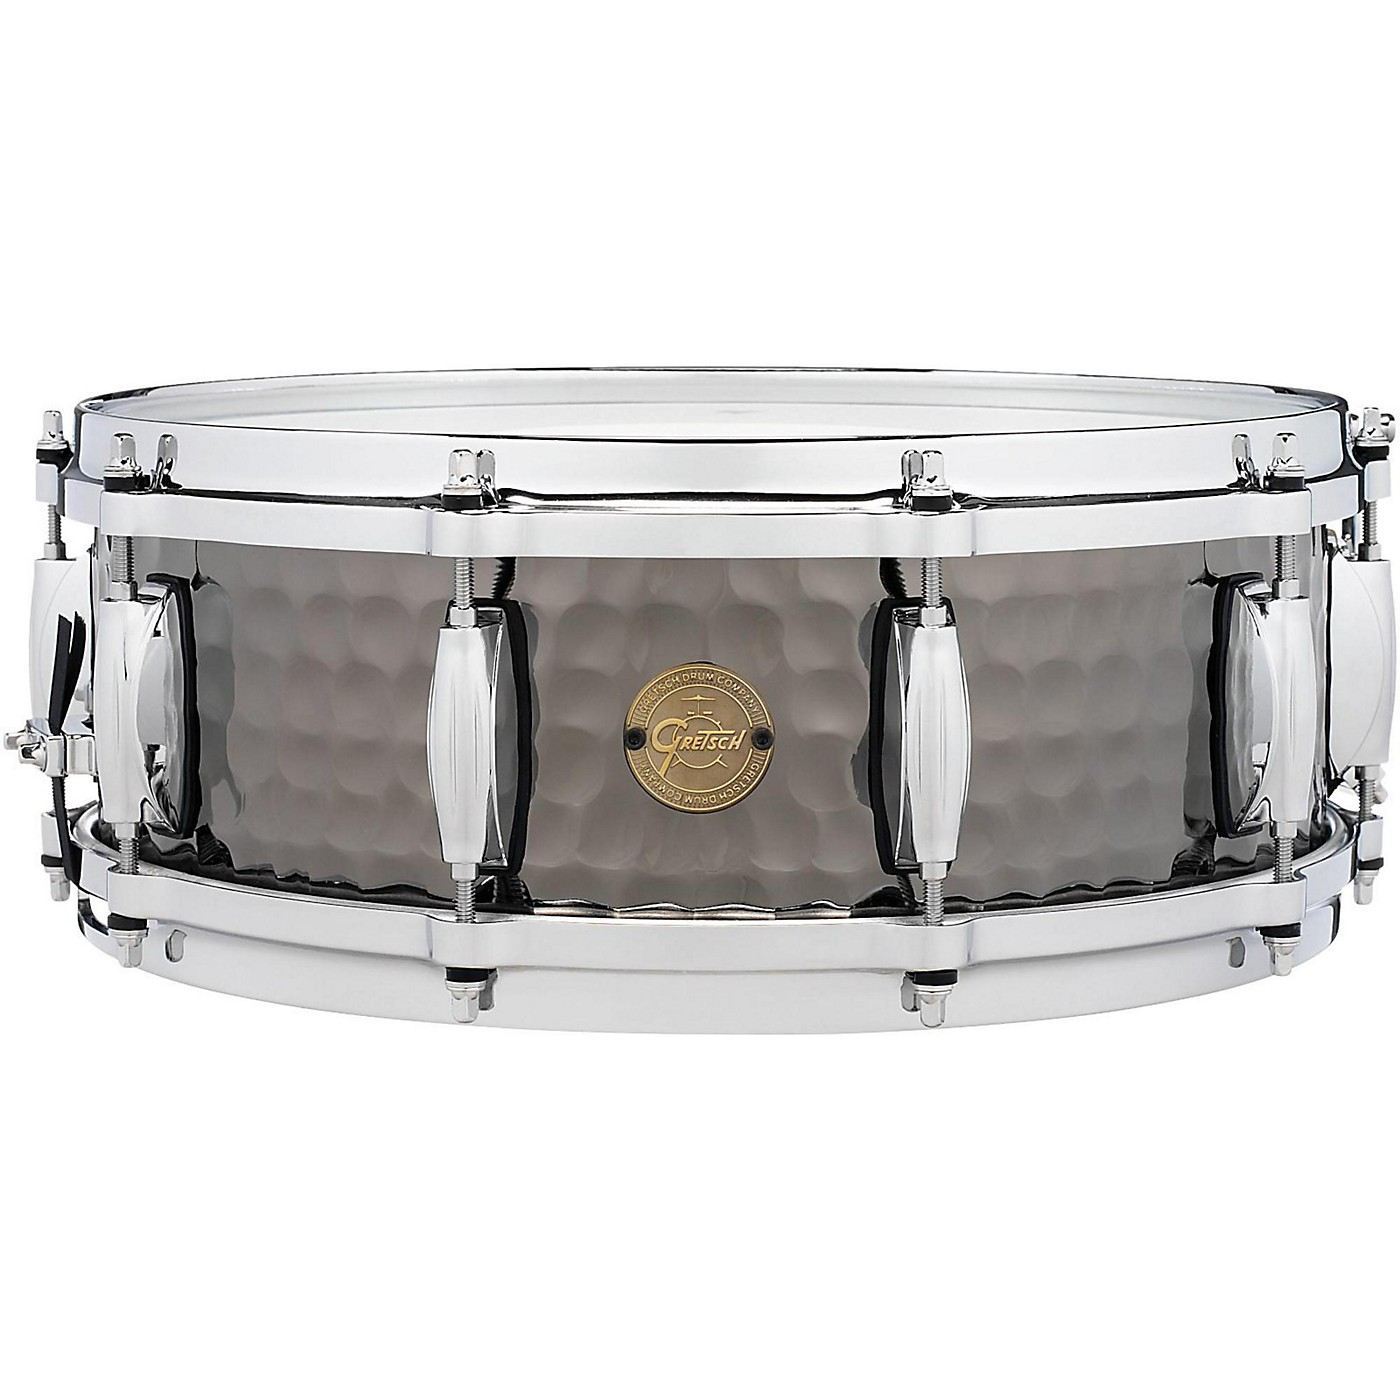 Gretsch Drums Hammered Black Steel Snare thumbnail